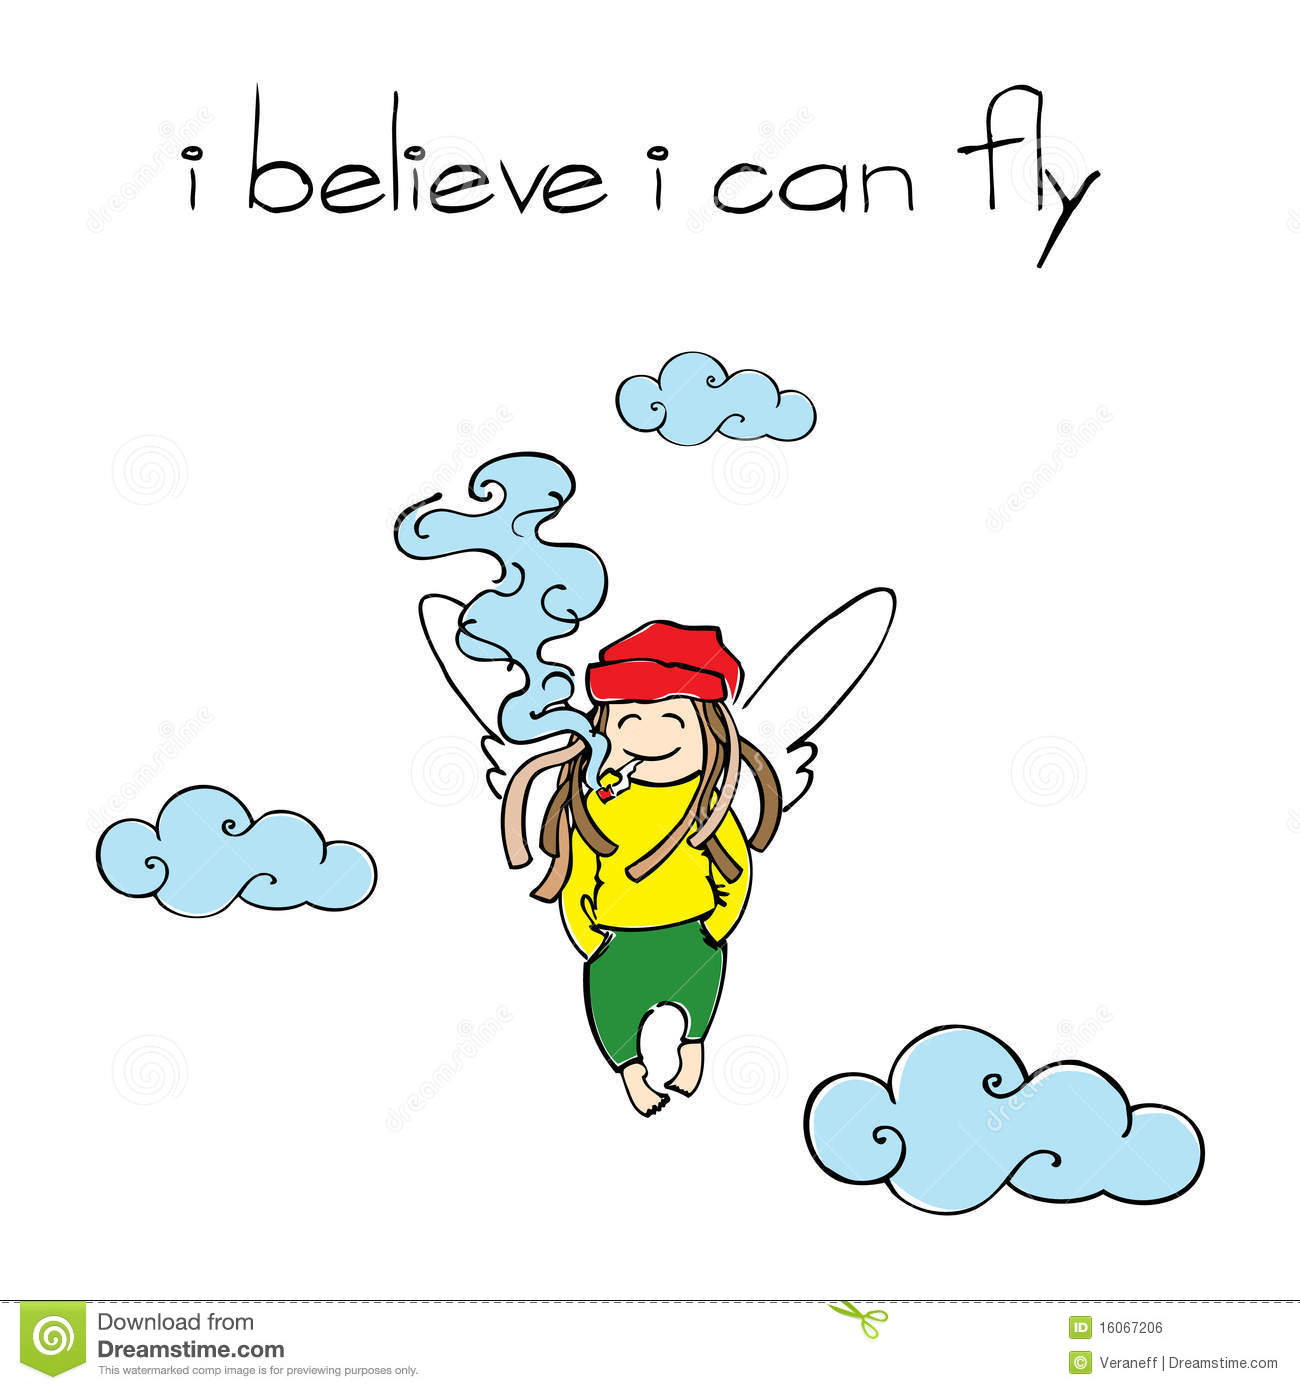 I believe i can fly тату